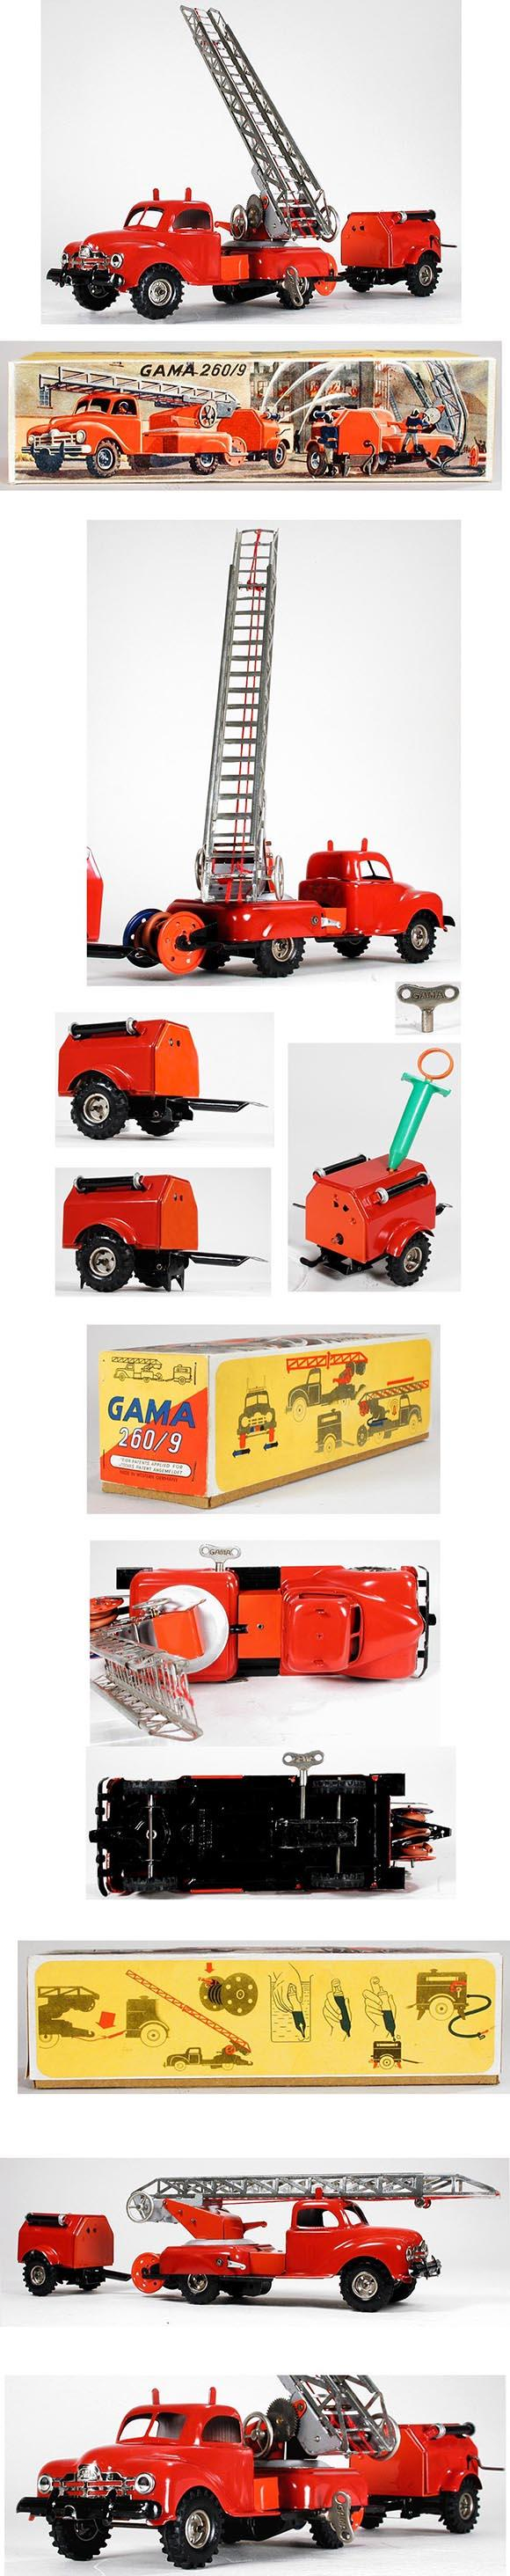 c.1946 GAMA, No.260/9 Fire Truck with Water Pumper in Original Box